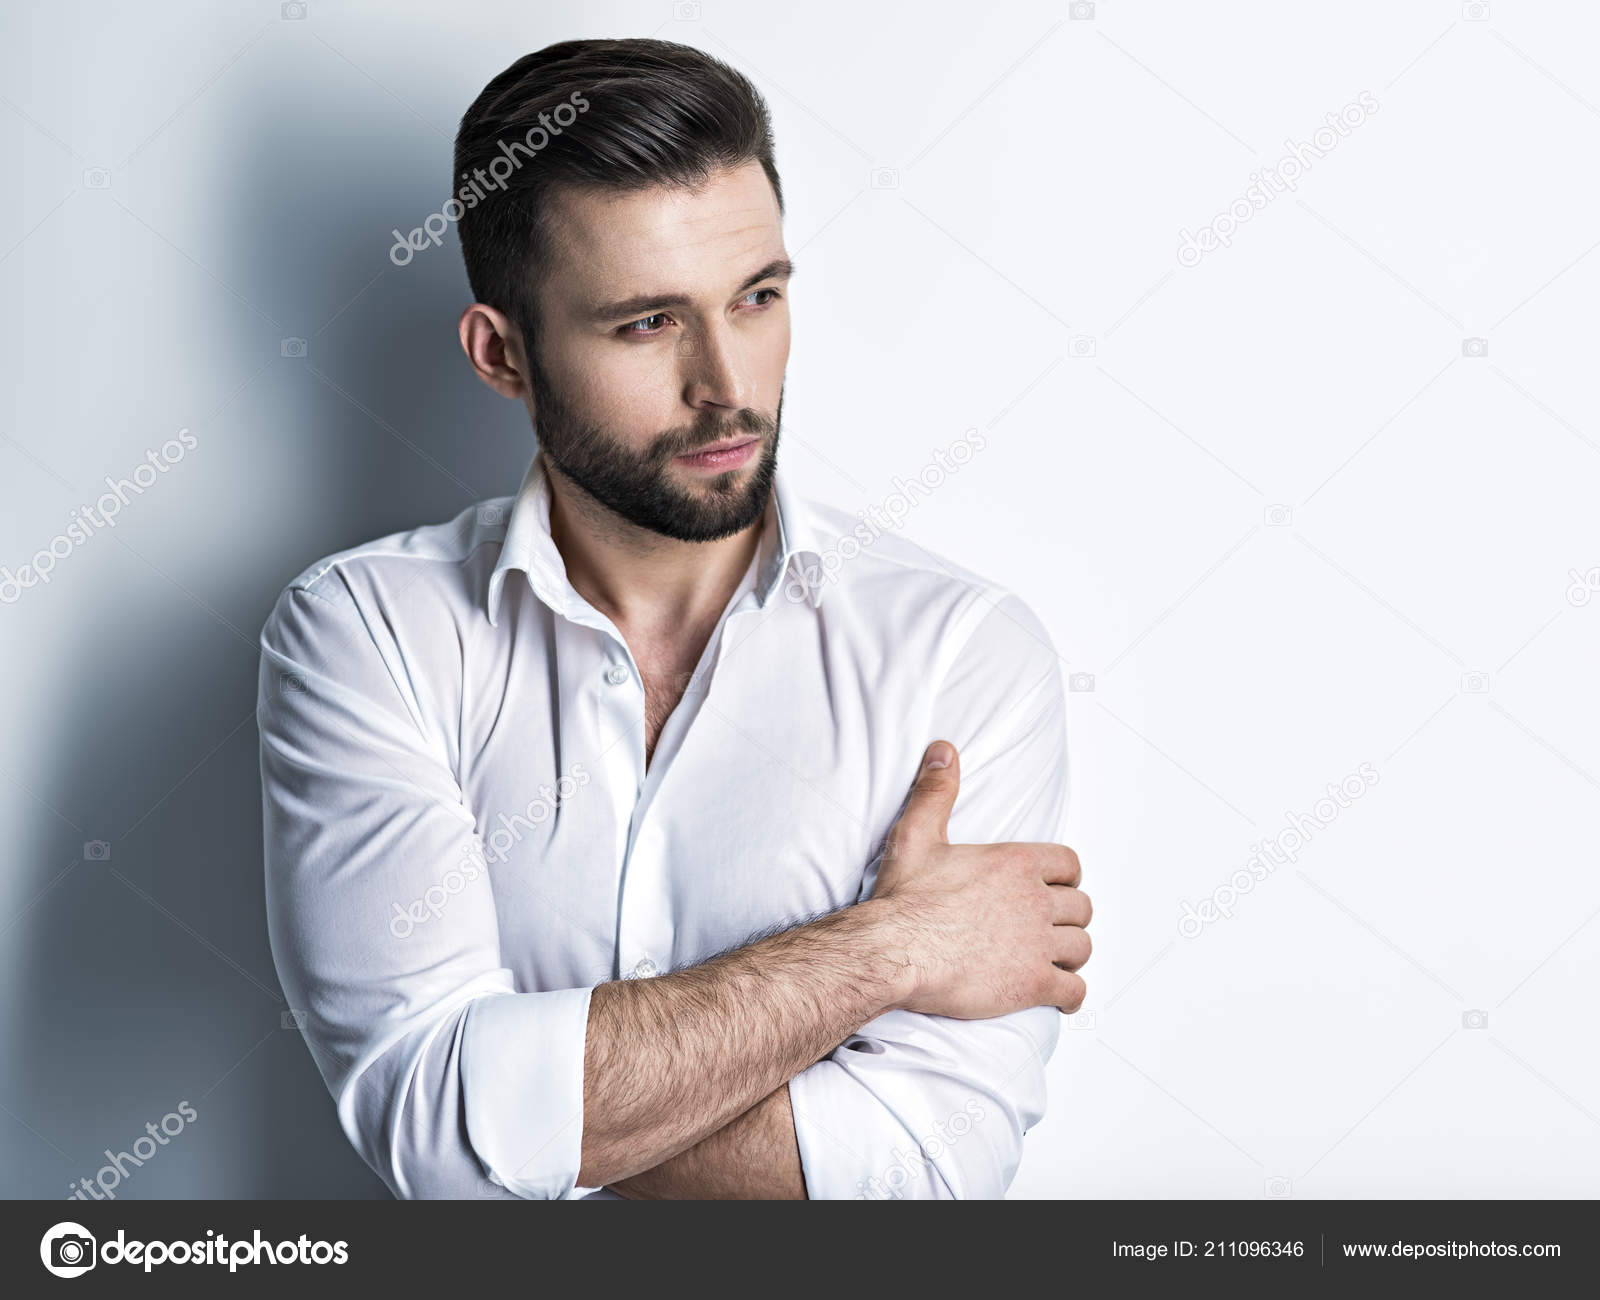 Male Pictures Images Stock Photos Depositphotos Your man stock images are ready. male pictures images stock photos depositphotos